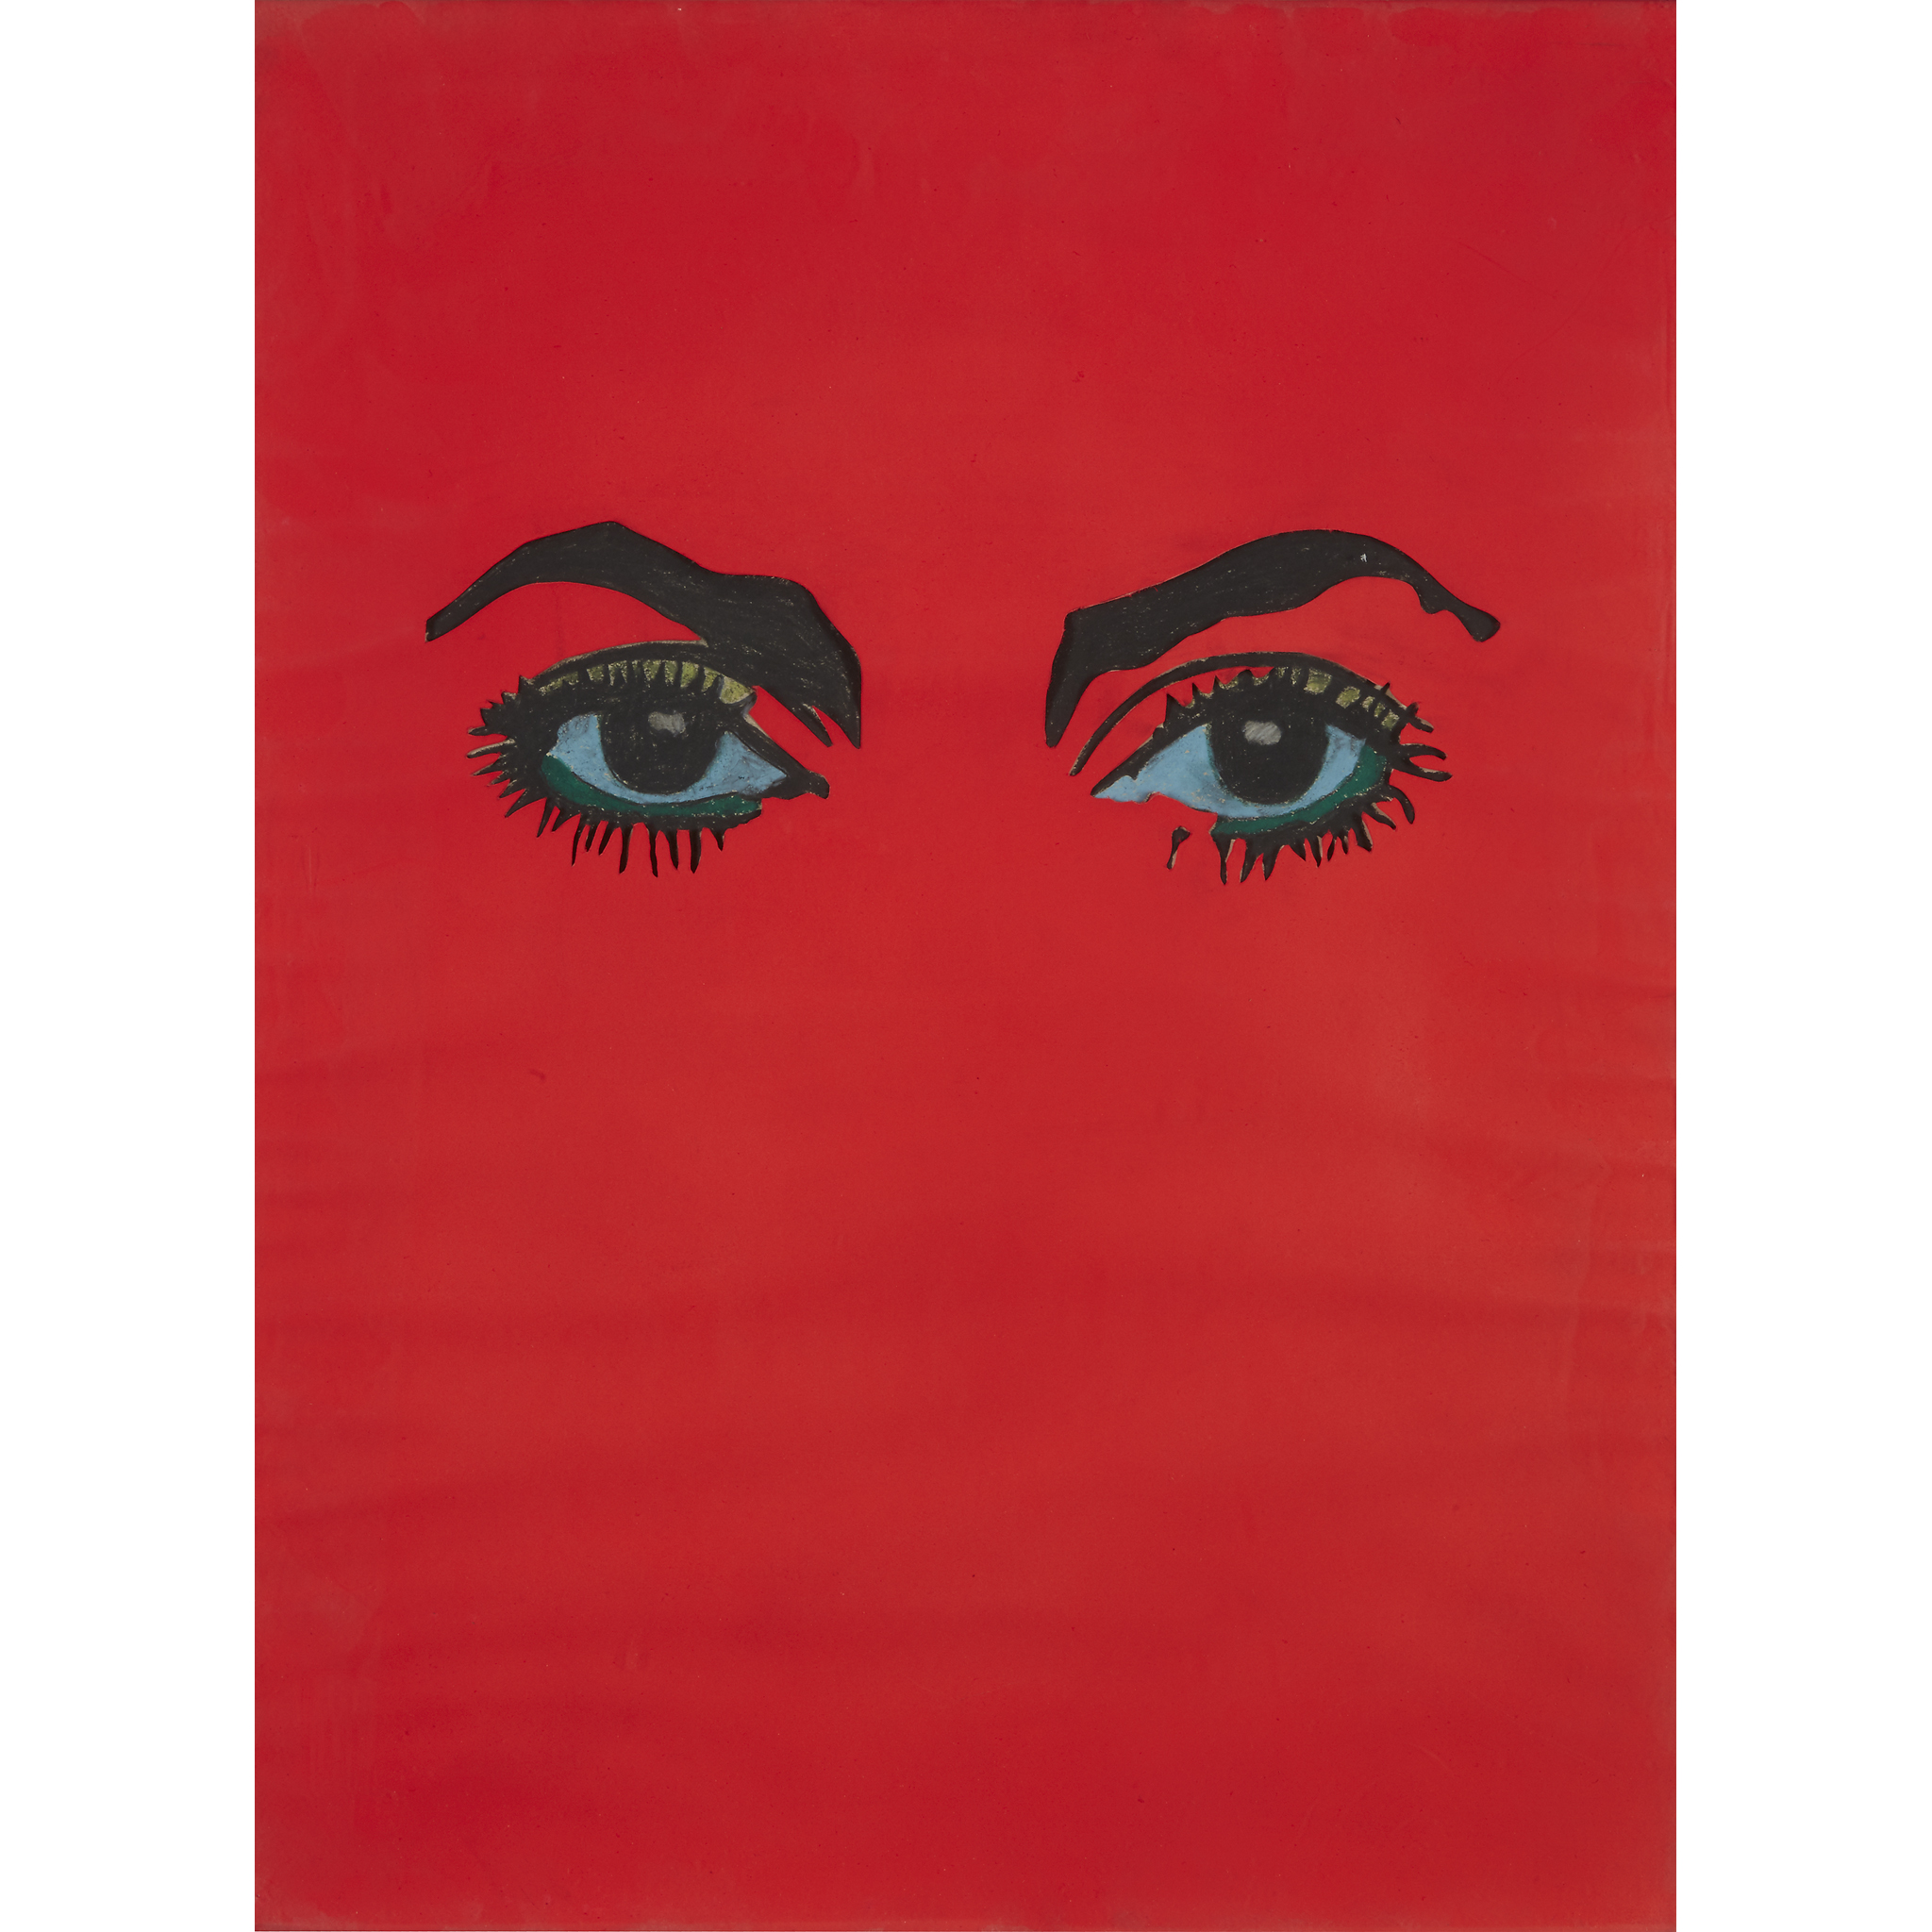 UNTITLED (EYES), a work that French artist Martial Raysse gave to Hotel Chelsea manager Stanley Bard.